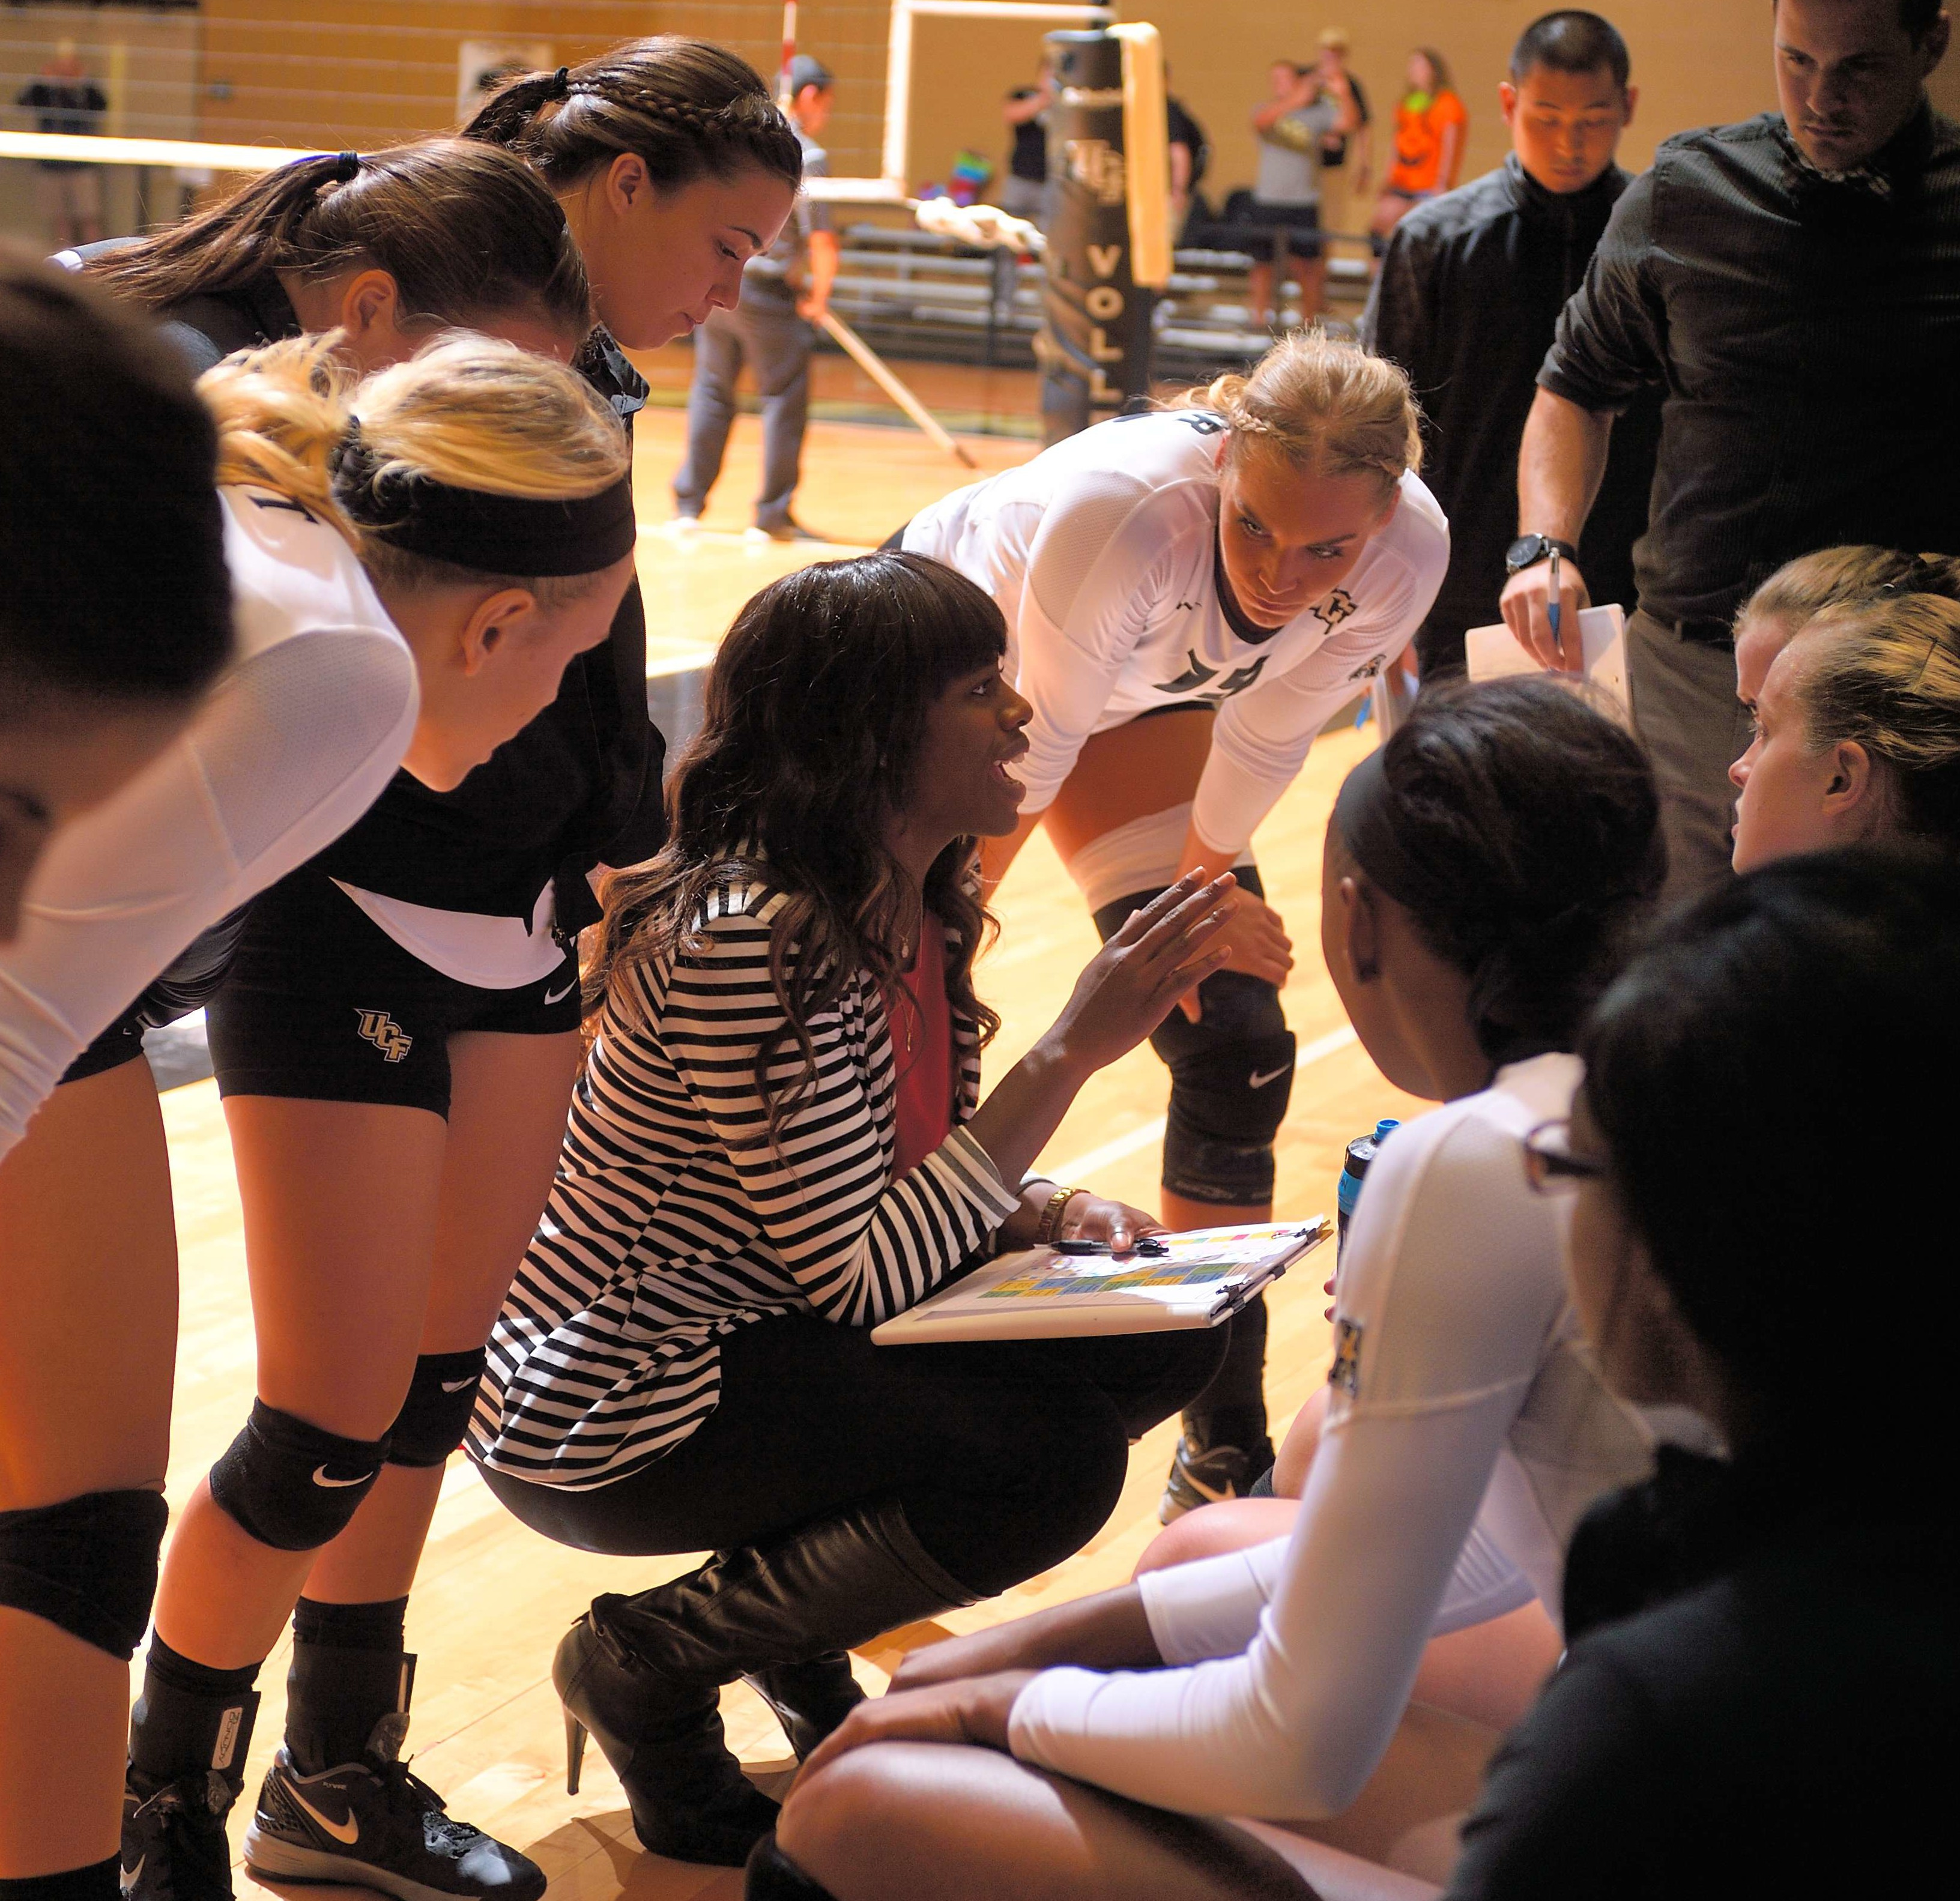 Michelle Chatman was part of UCF Volleyball coaching staff from 2008-2015